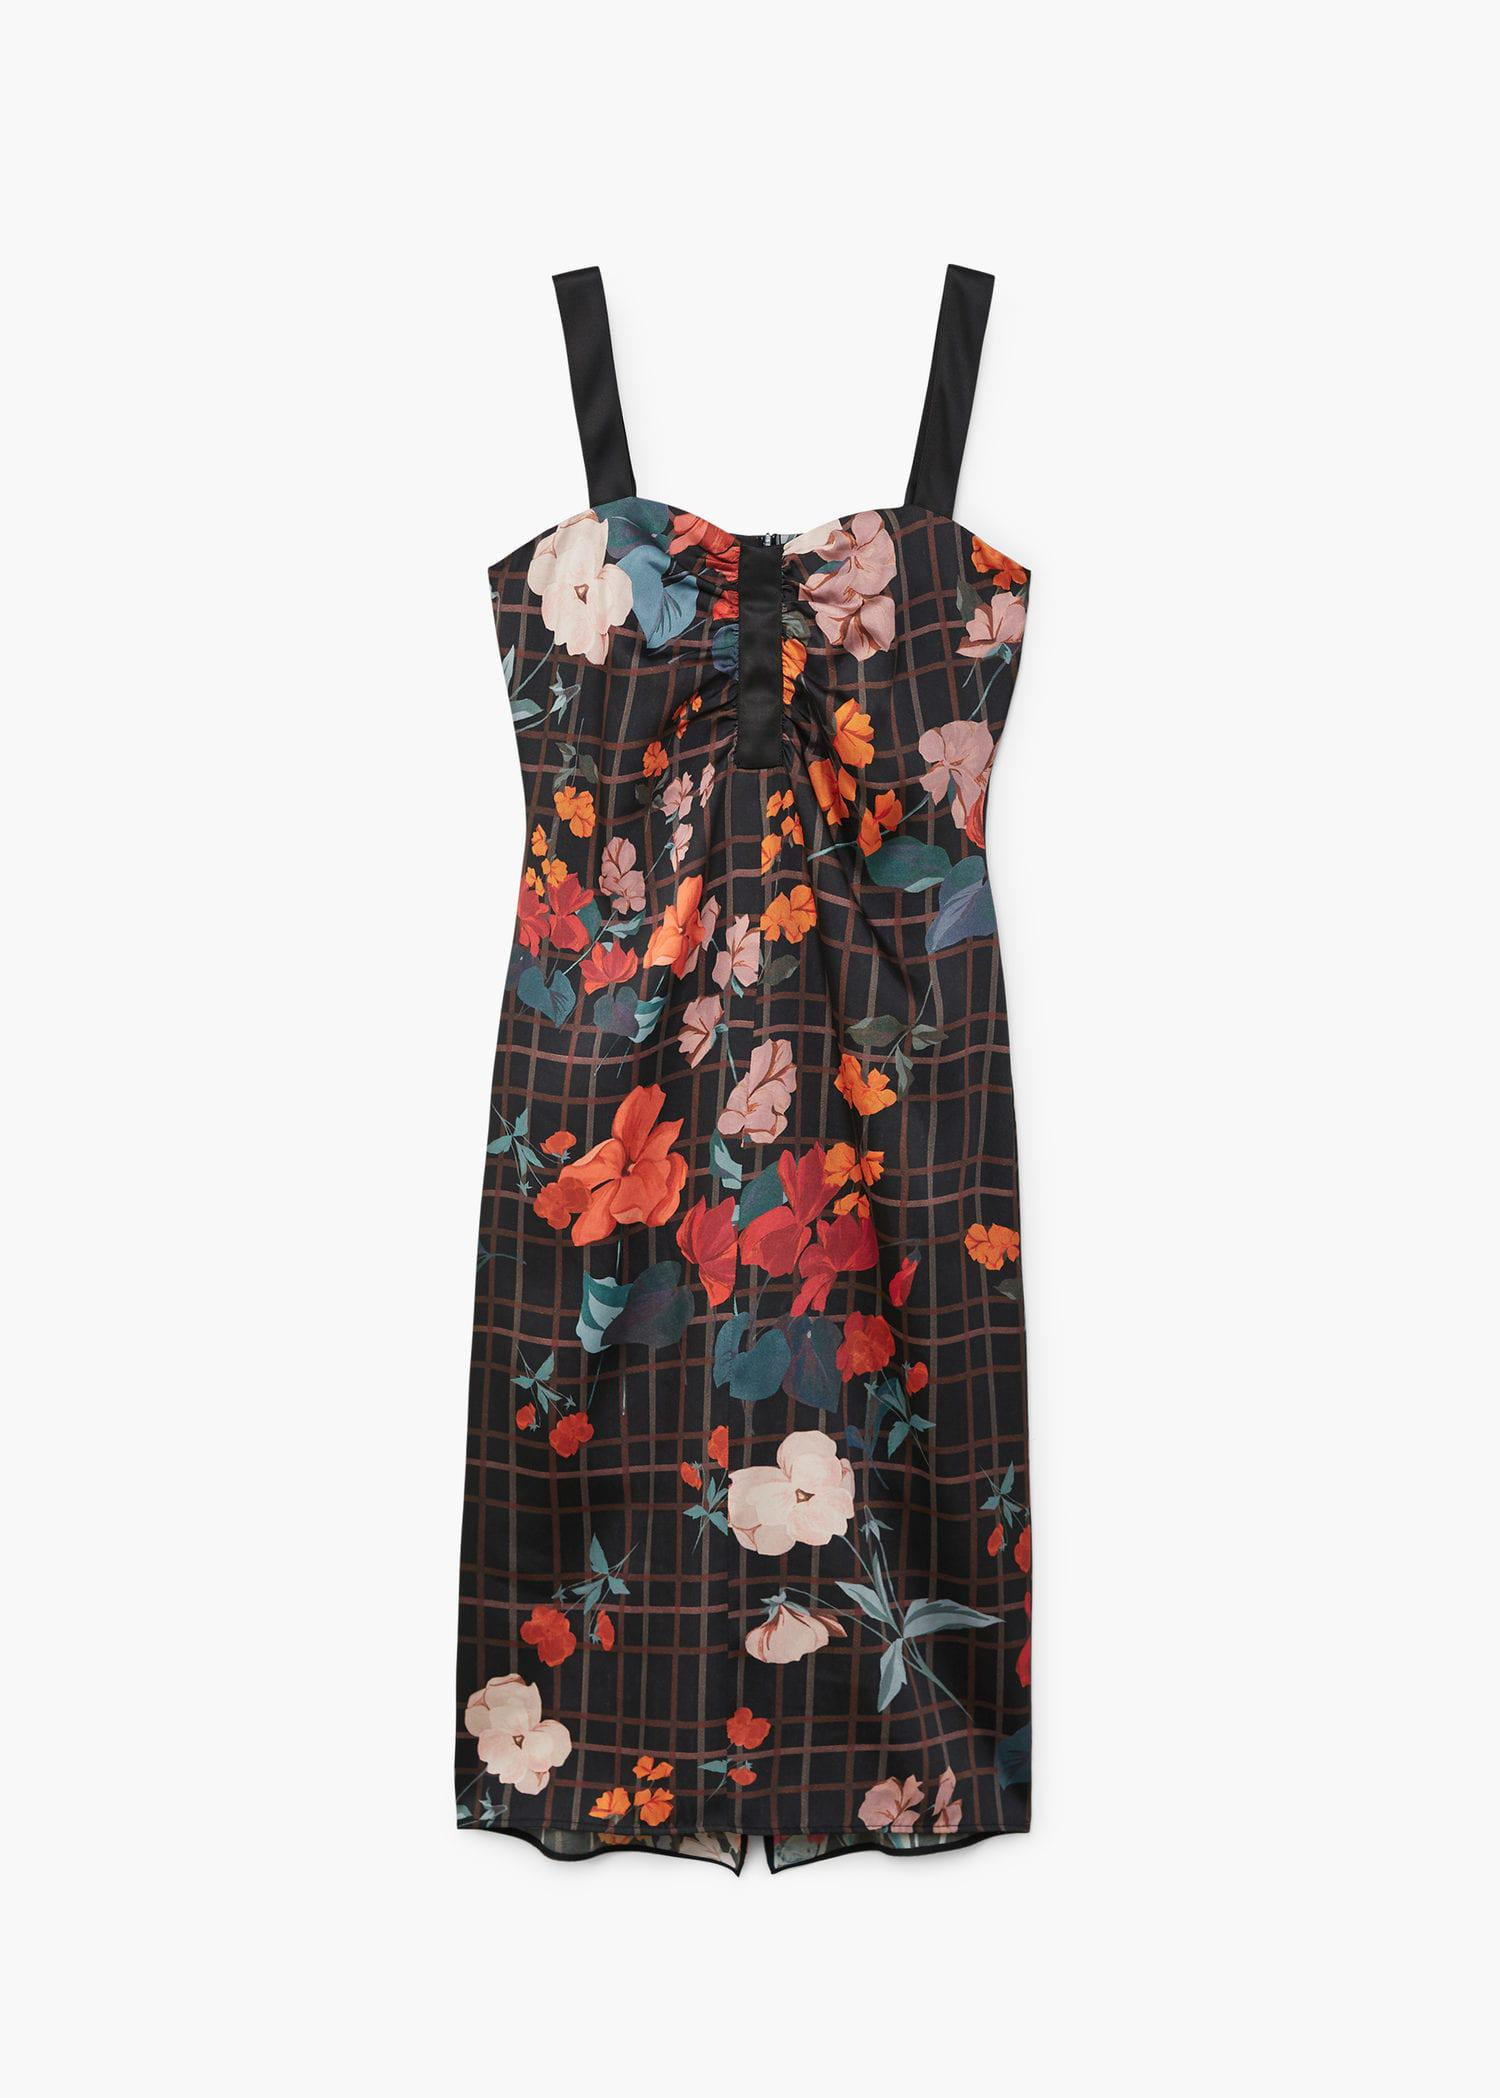 Mango Synthetic Contrasting Print Dress in Black